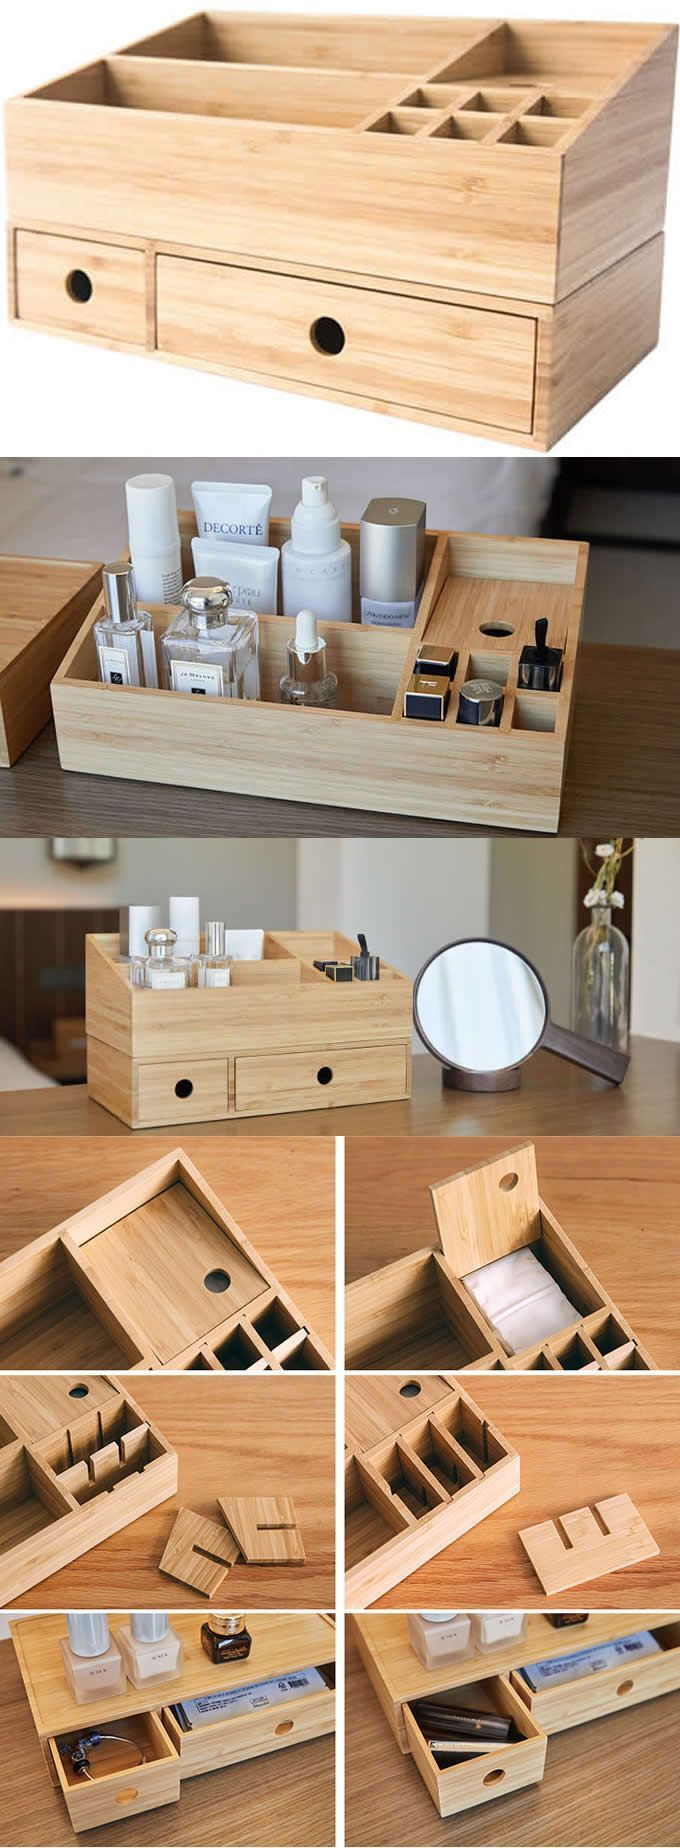 Bamboo Wooden  Office Desk Orangizer 2 Drawer Makeup Storage Organizer Skincare ...#bamboo #desk #drawer #makeup #office #orangizer #organizer #skincare #storage #wooden